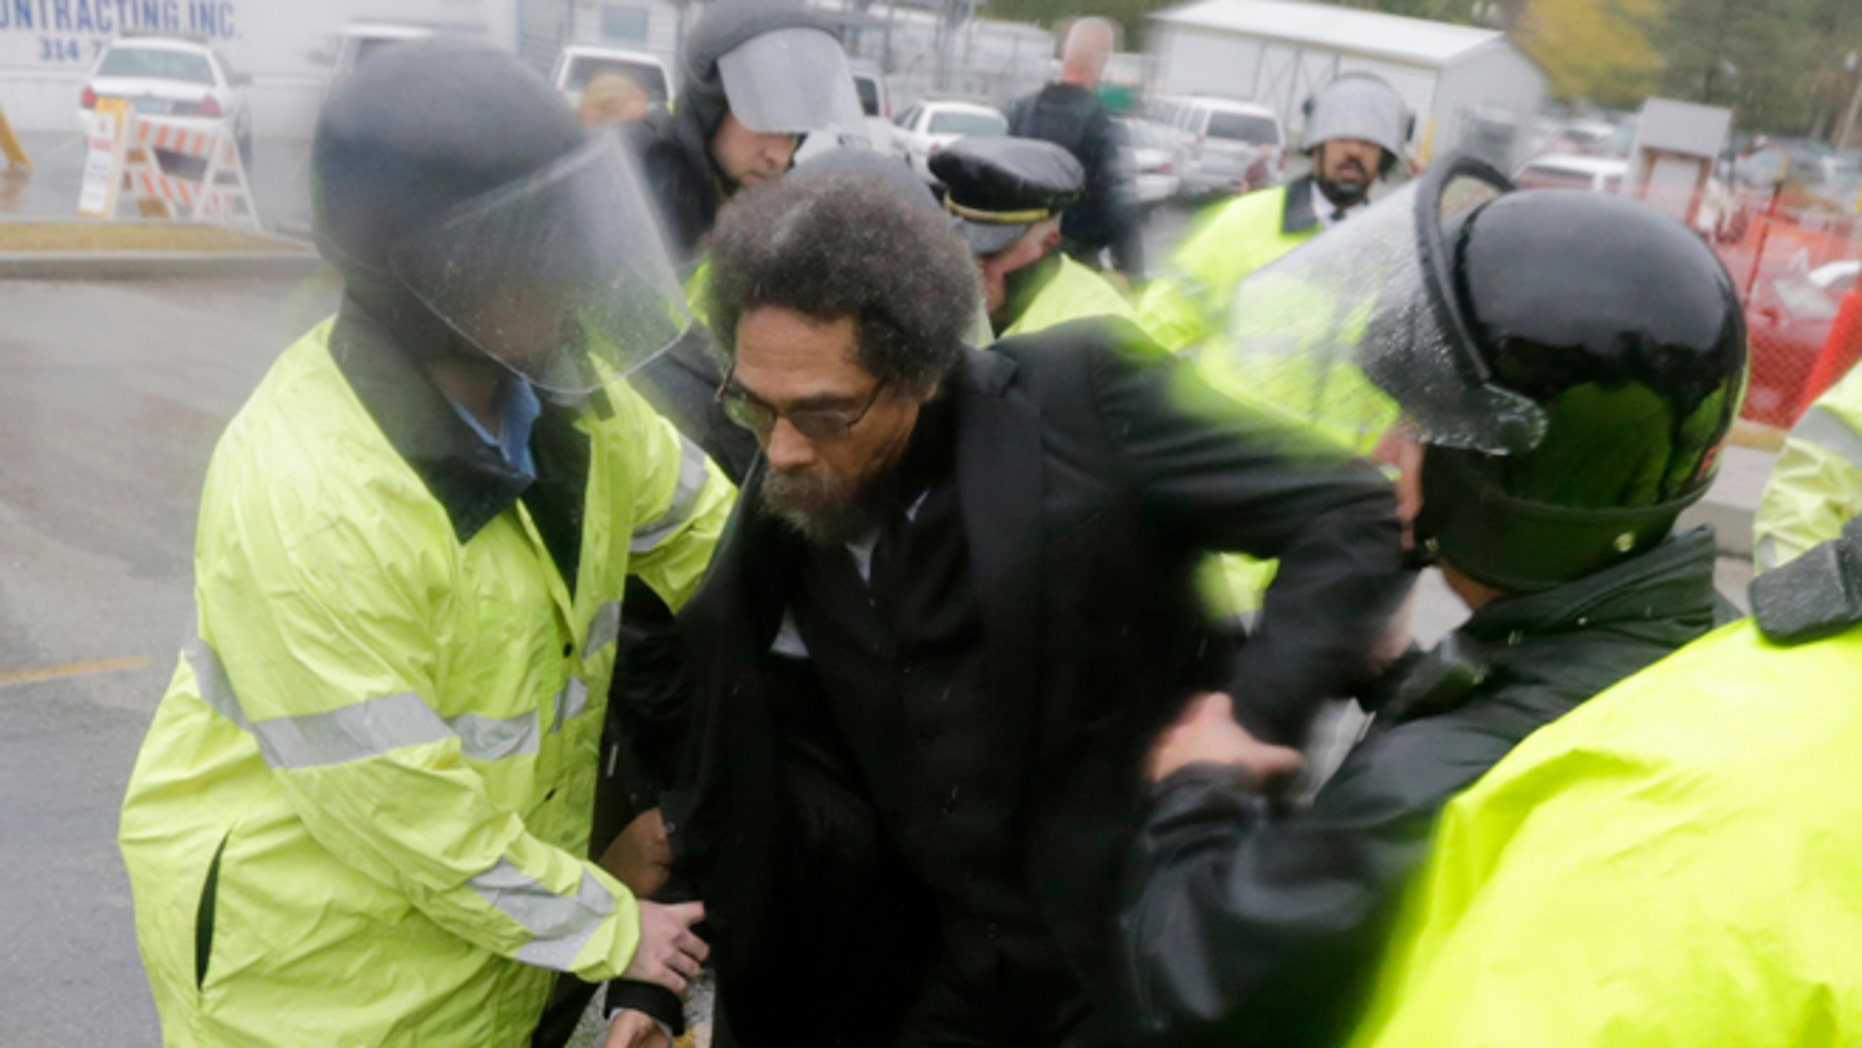 Oct. 13, 2014: Philosopher Cornel West, center, is taken into custody after performing an act of civil disobedience at the Ferguson, Mo., police station.